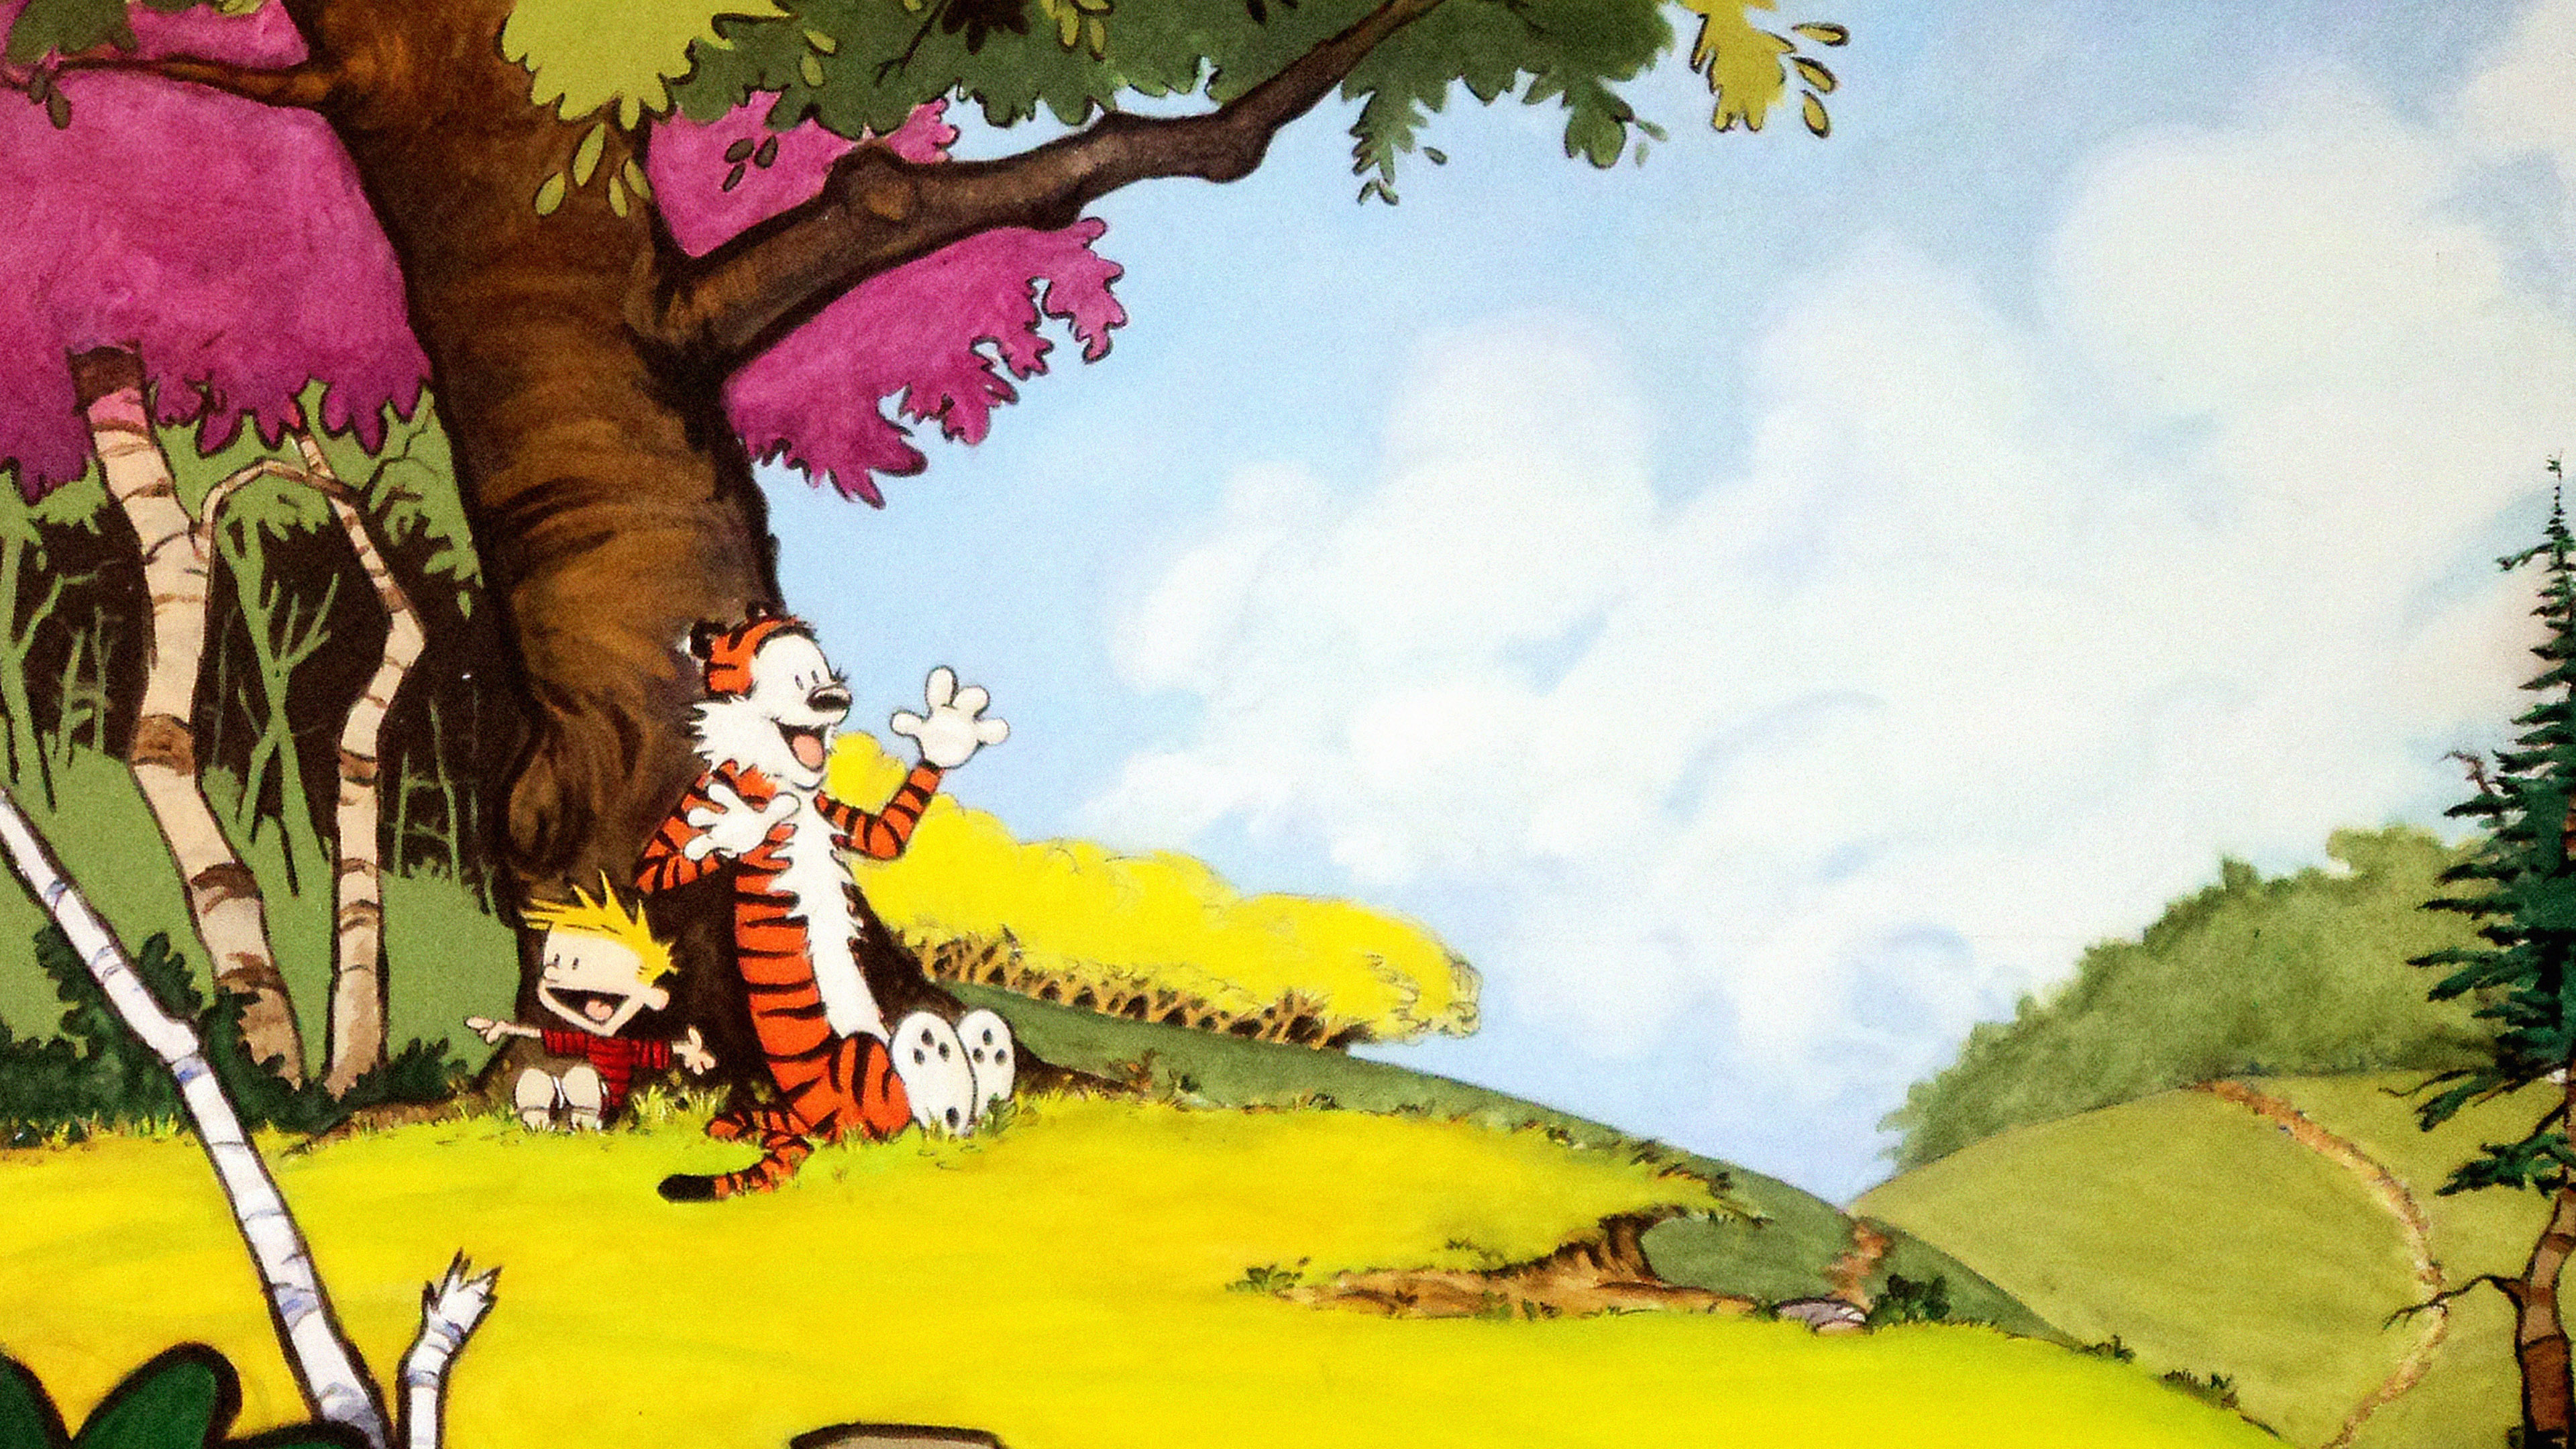 Ac48 Wallpaper Calvin And Hobbes After Nap Papers Co